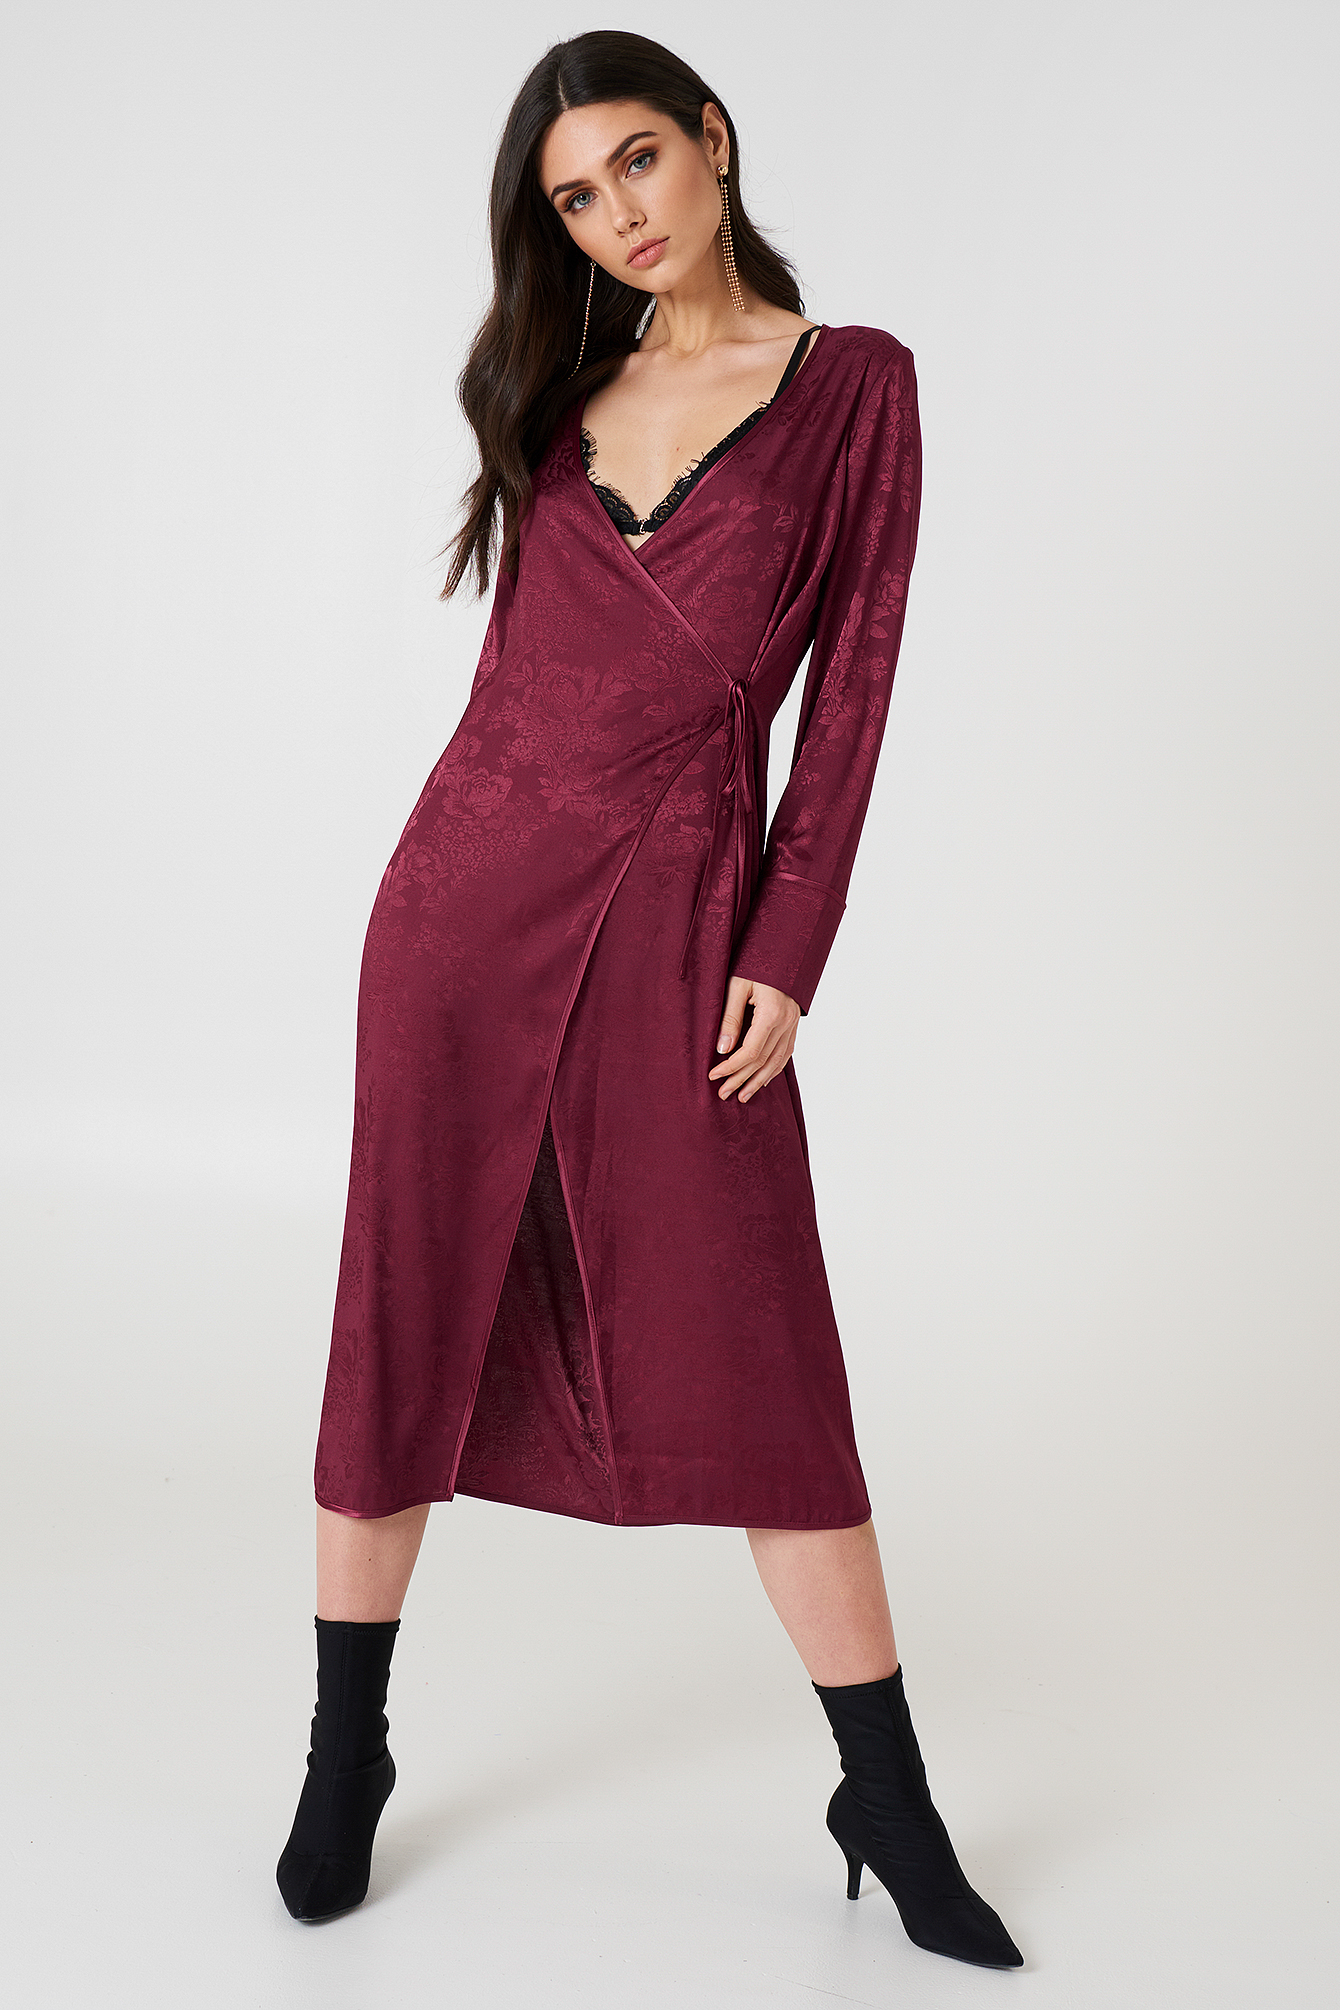 NA-KD Boho Wrapped Jacquard Satin Dress - Burgundy